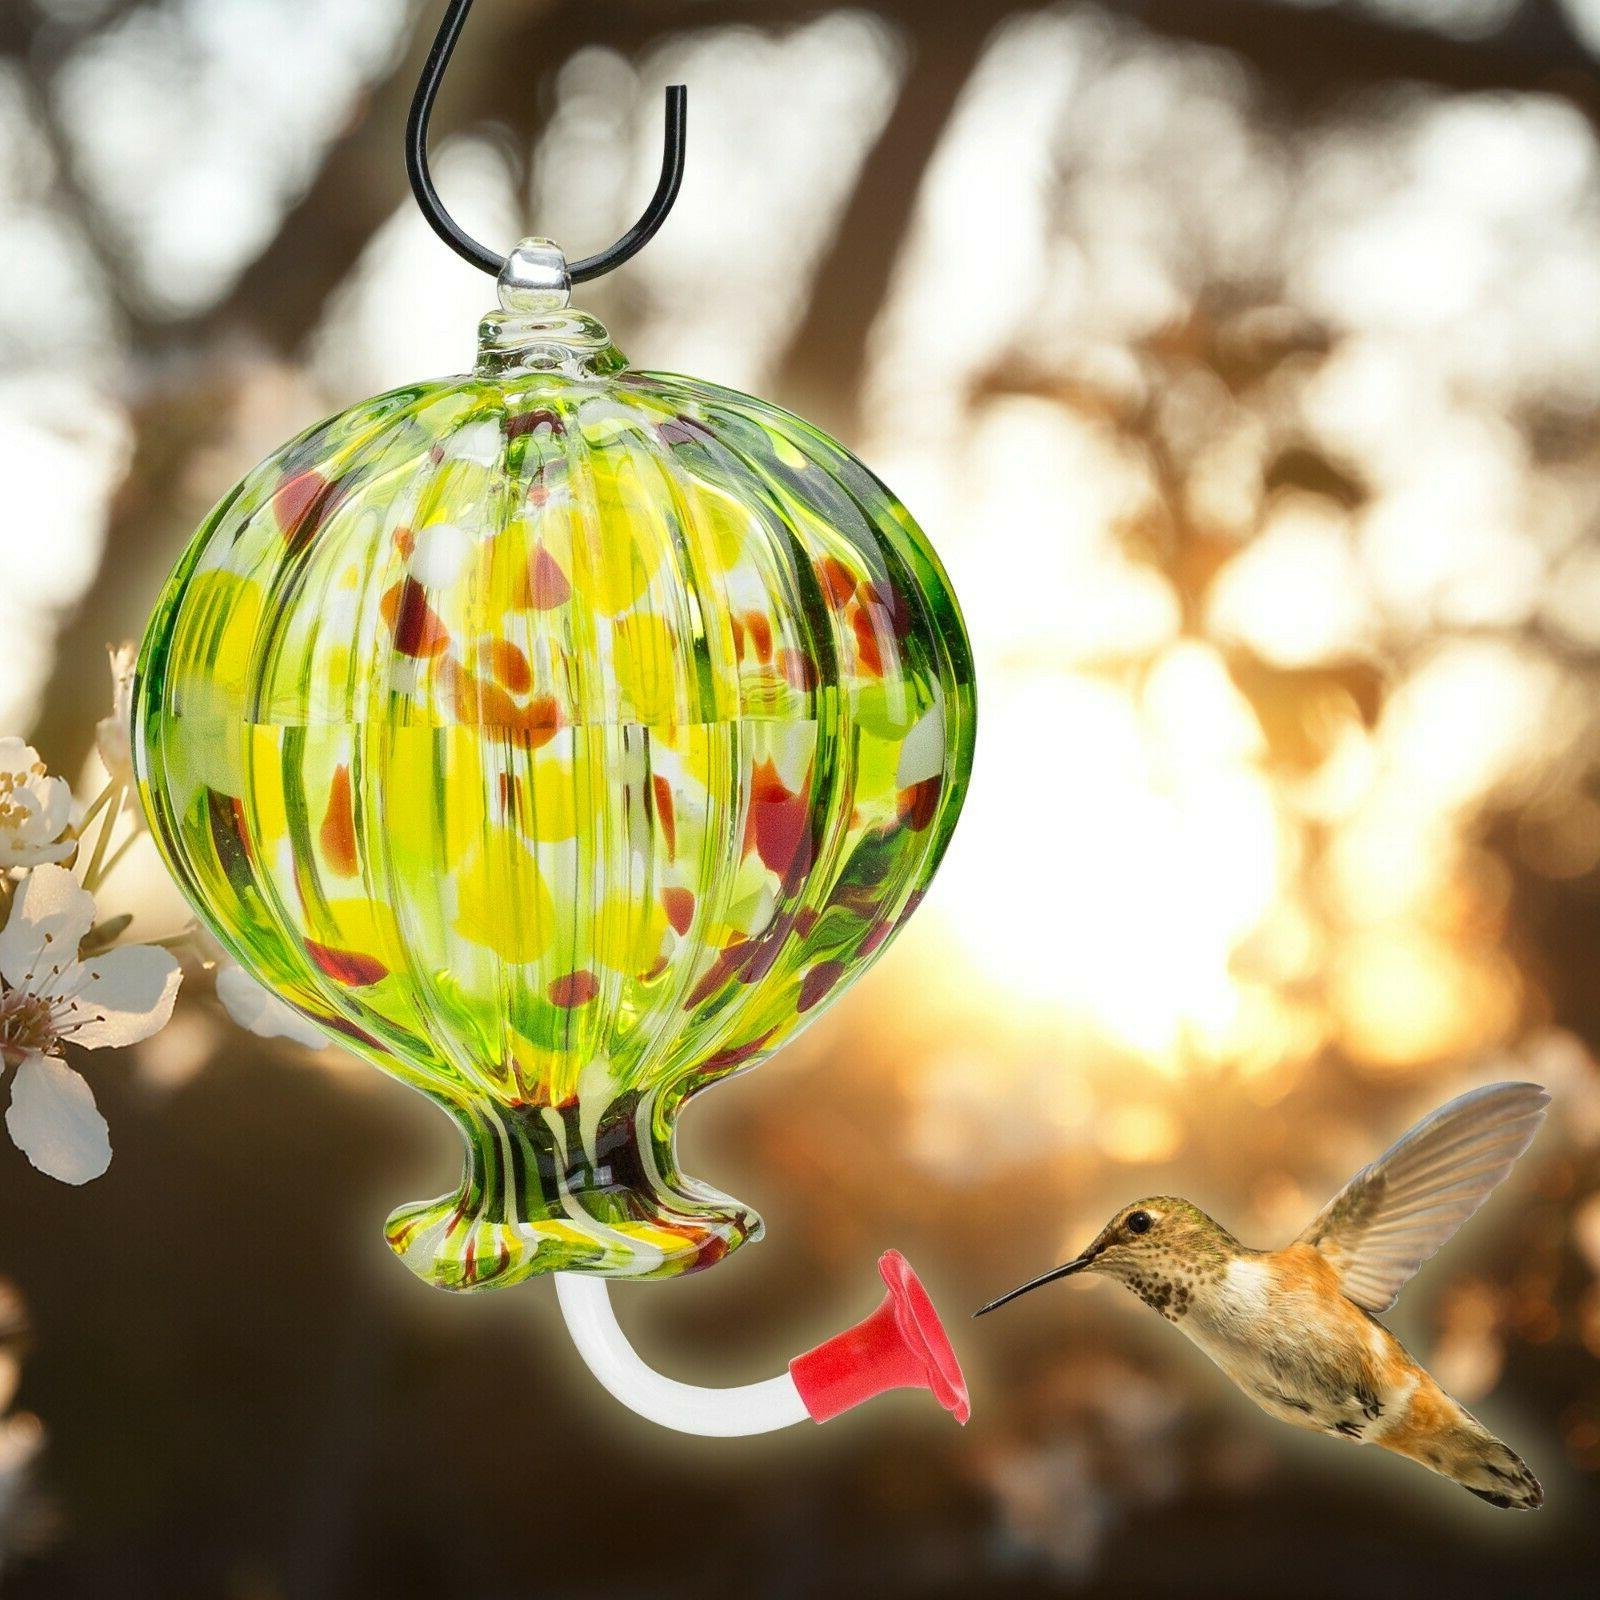 Hummingbird Feeder Summer 16 Glass Stopper Flower Red